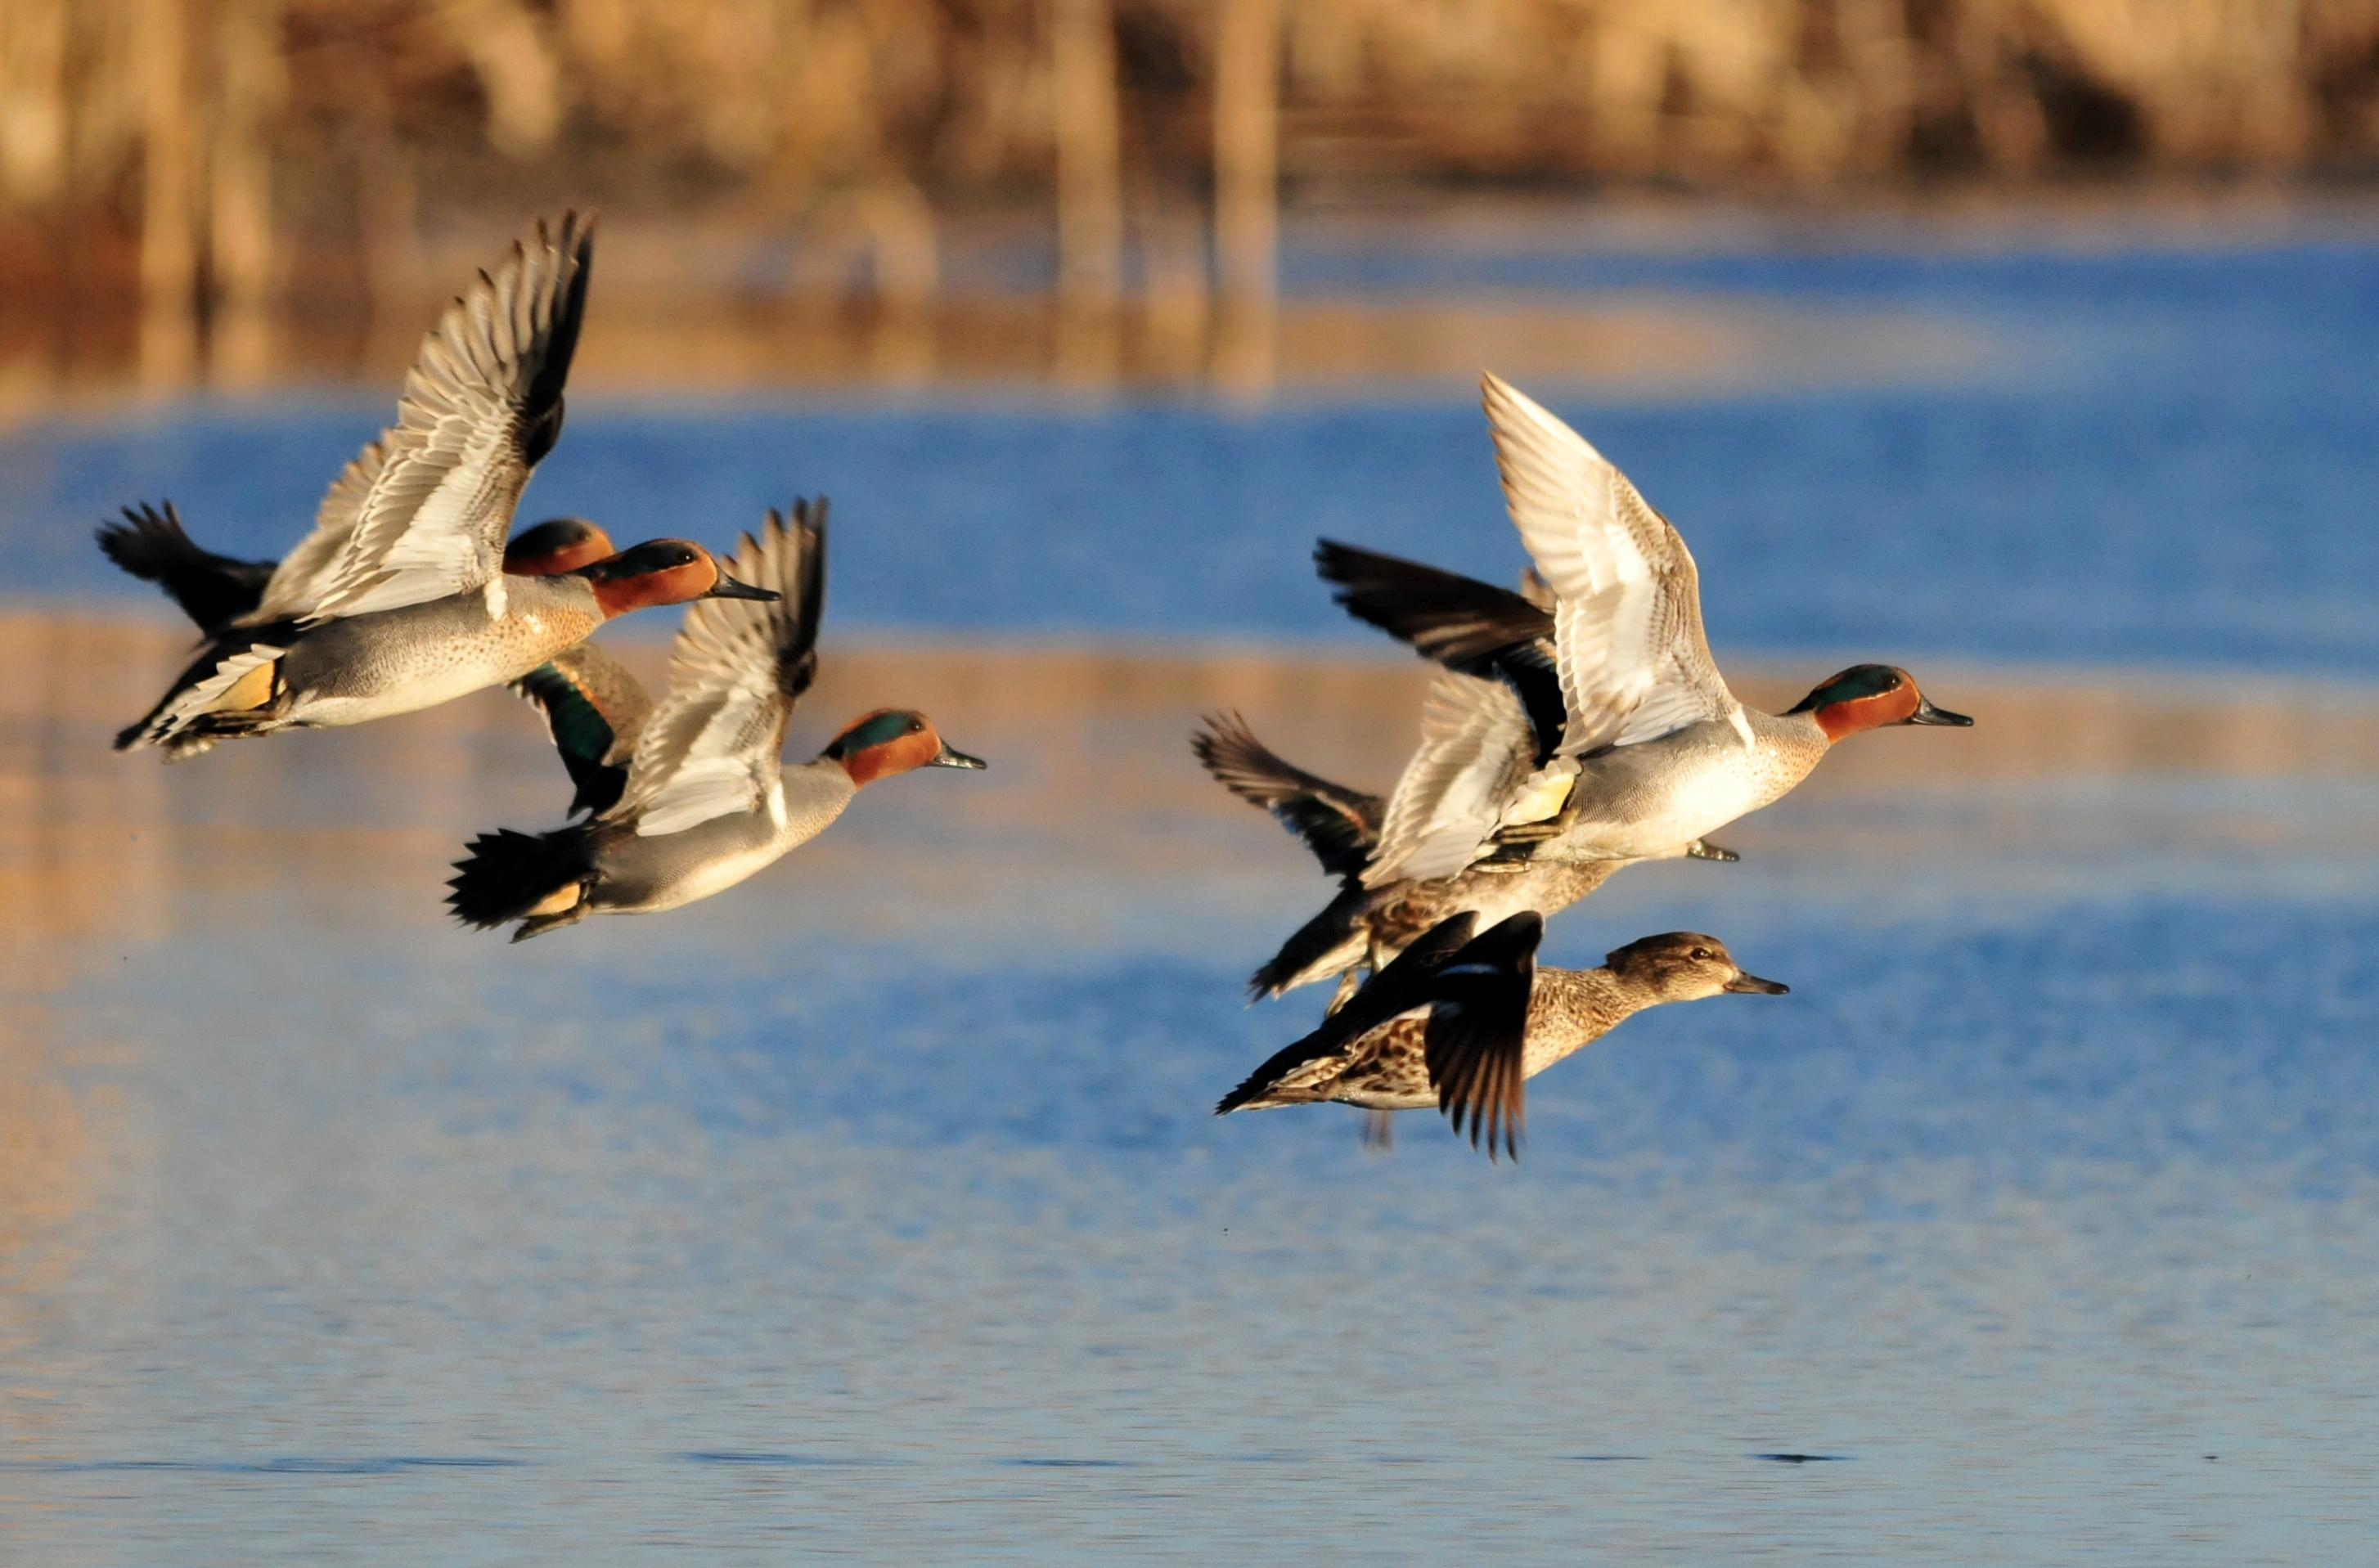 A variety of waterfowl, including green-winged teal, use wetlands for food and habitat.